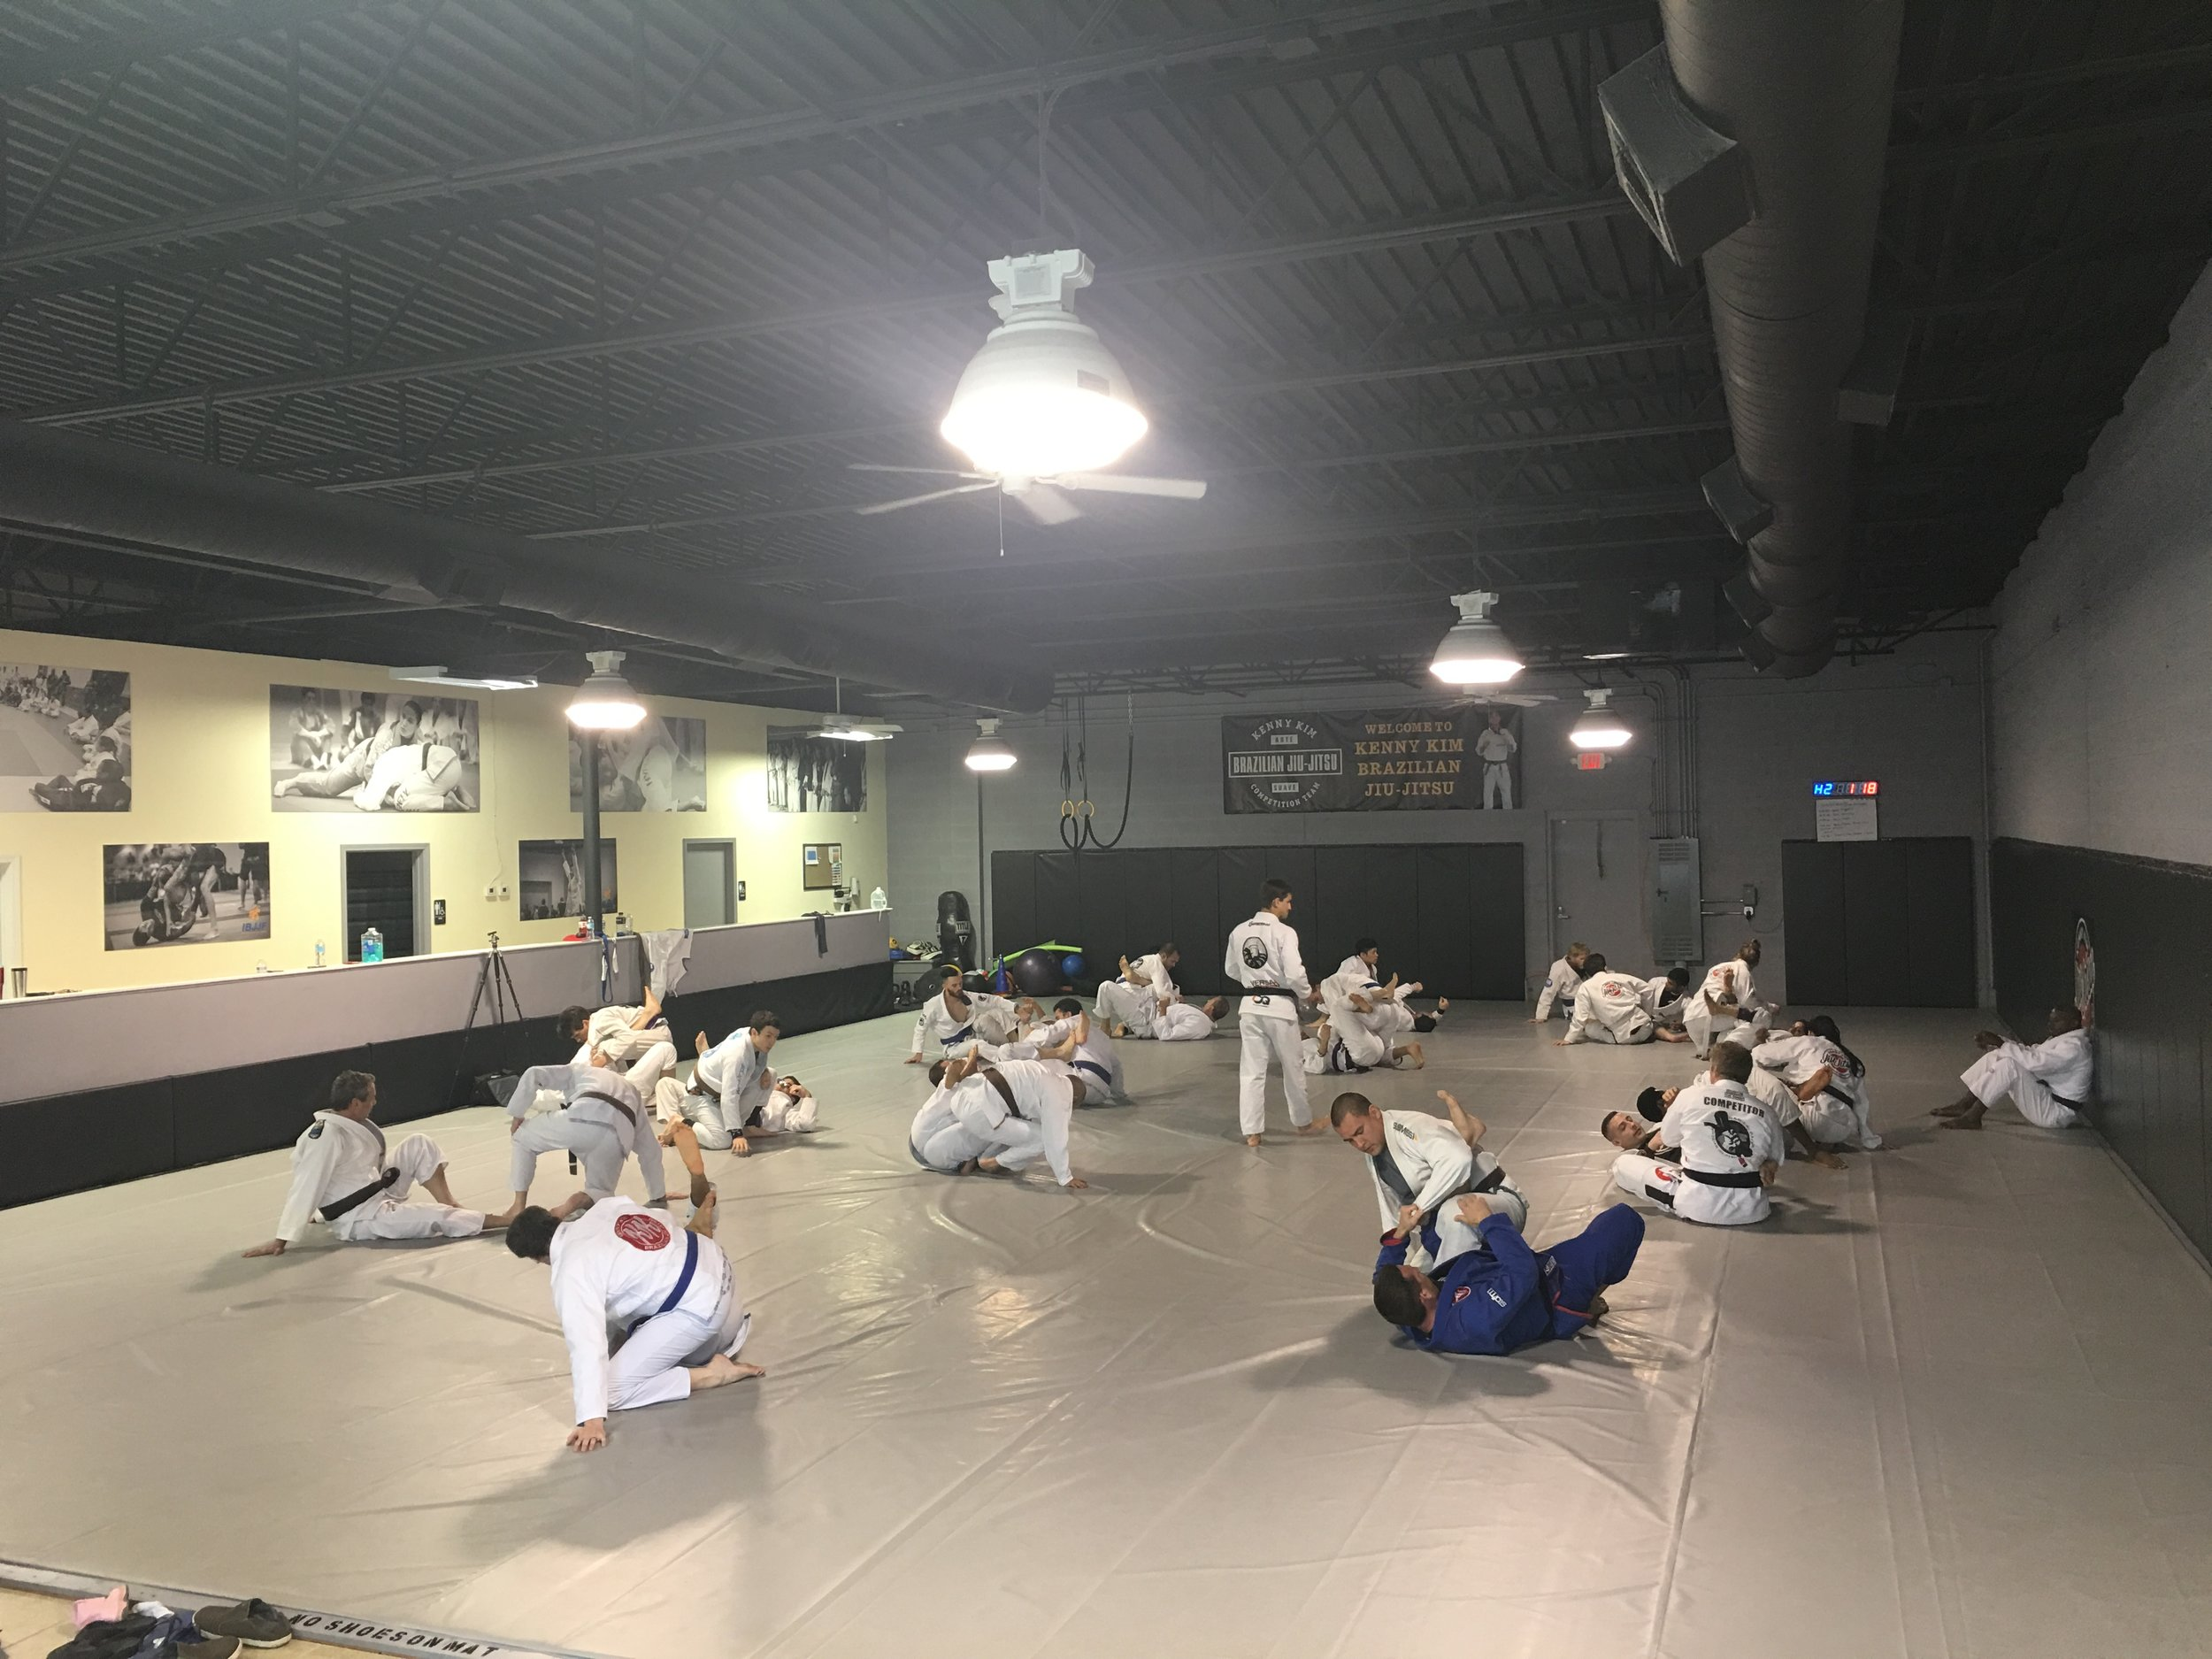 Thank You all who supported and attended the seminar taught by Samir and Quexinho. We hope you picked up some cool techniques and concepts and really appreciate the support. Next we will be hosting the ATL Open (Fall) camp with multiple black belts and team mates.